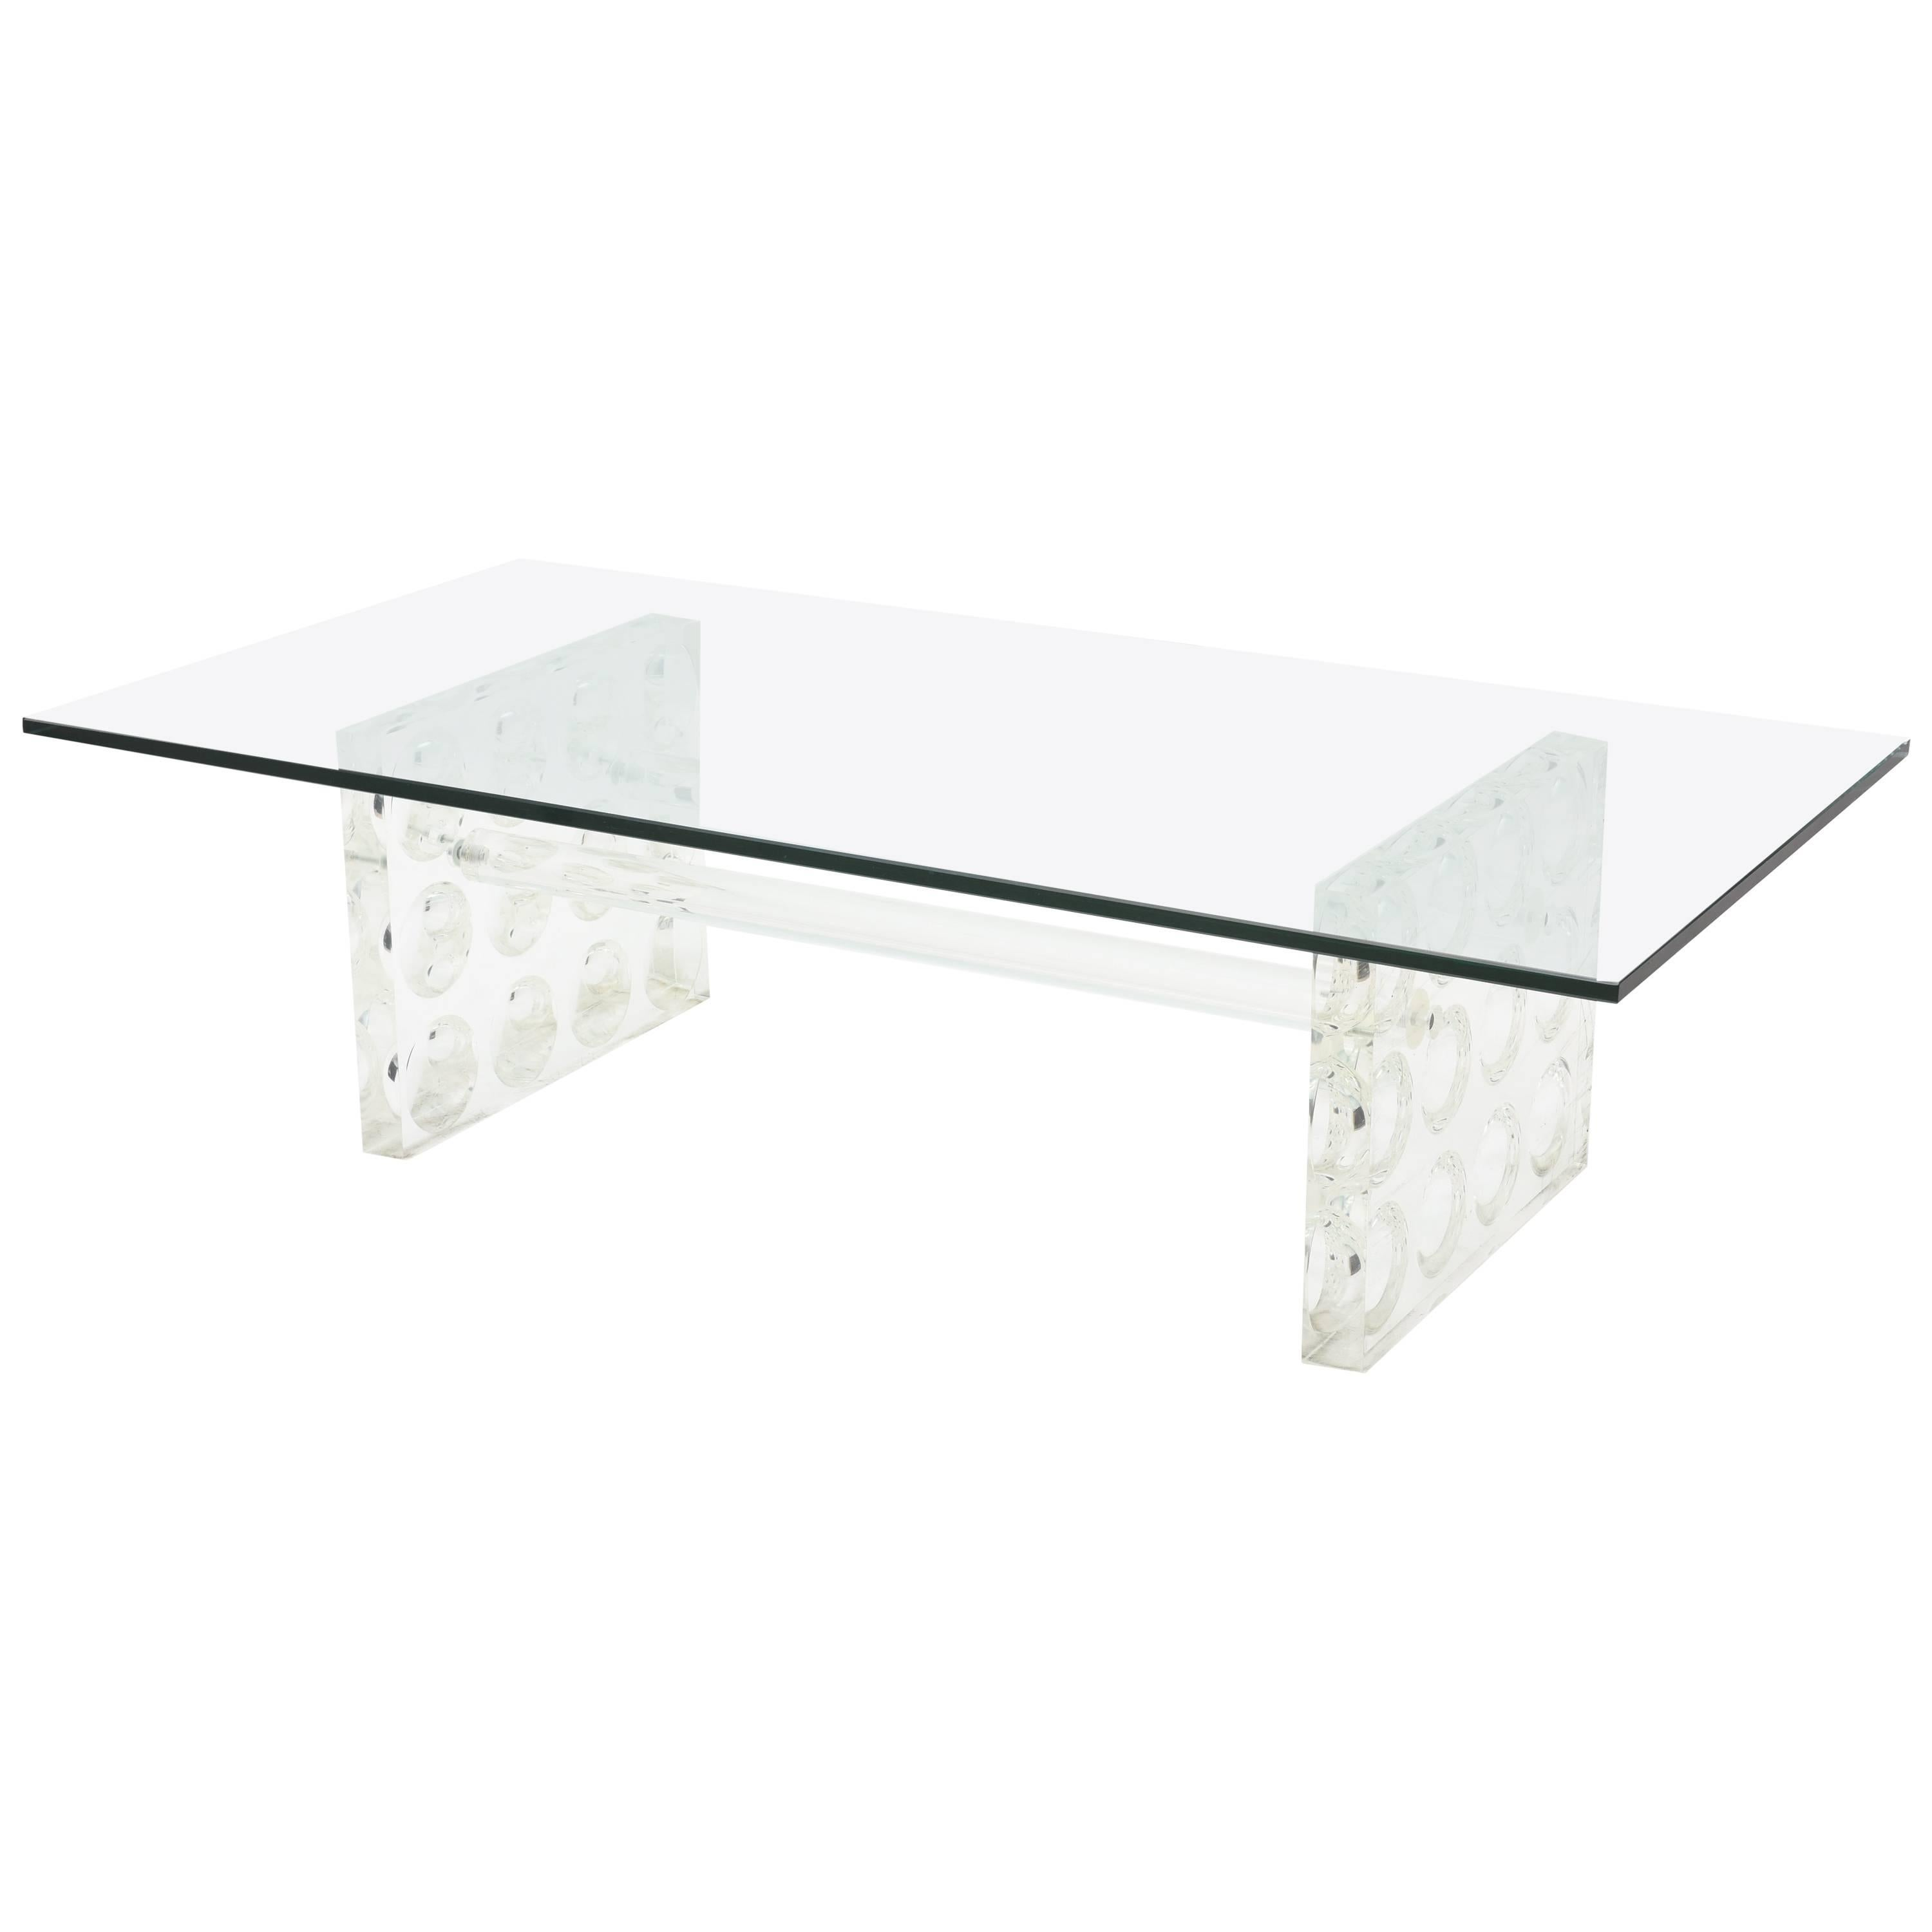 American Modern Lucite and Glass Low Table, Charles Hollis Jones